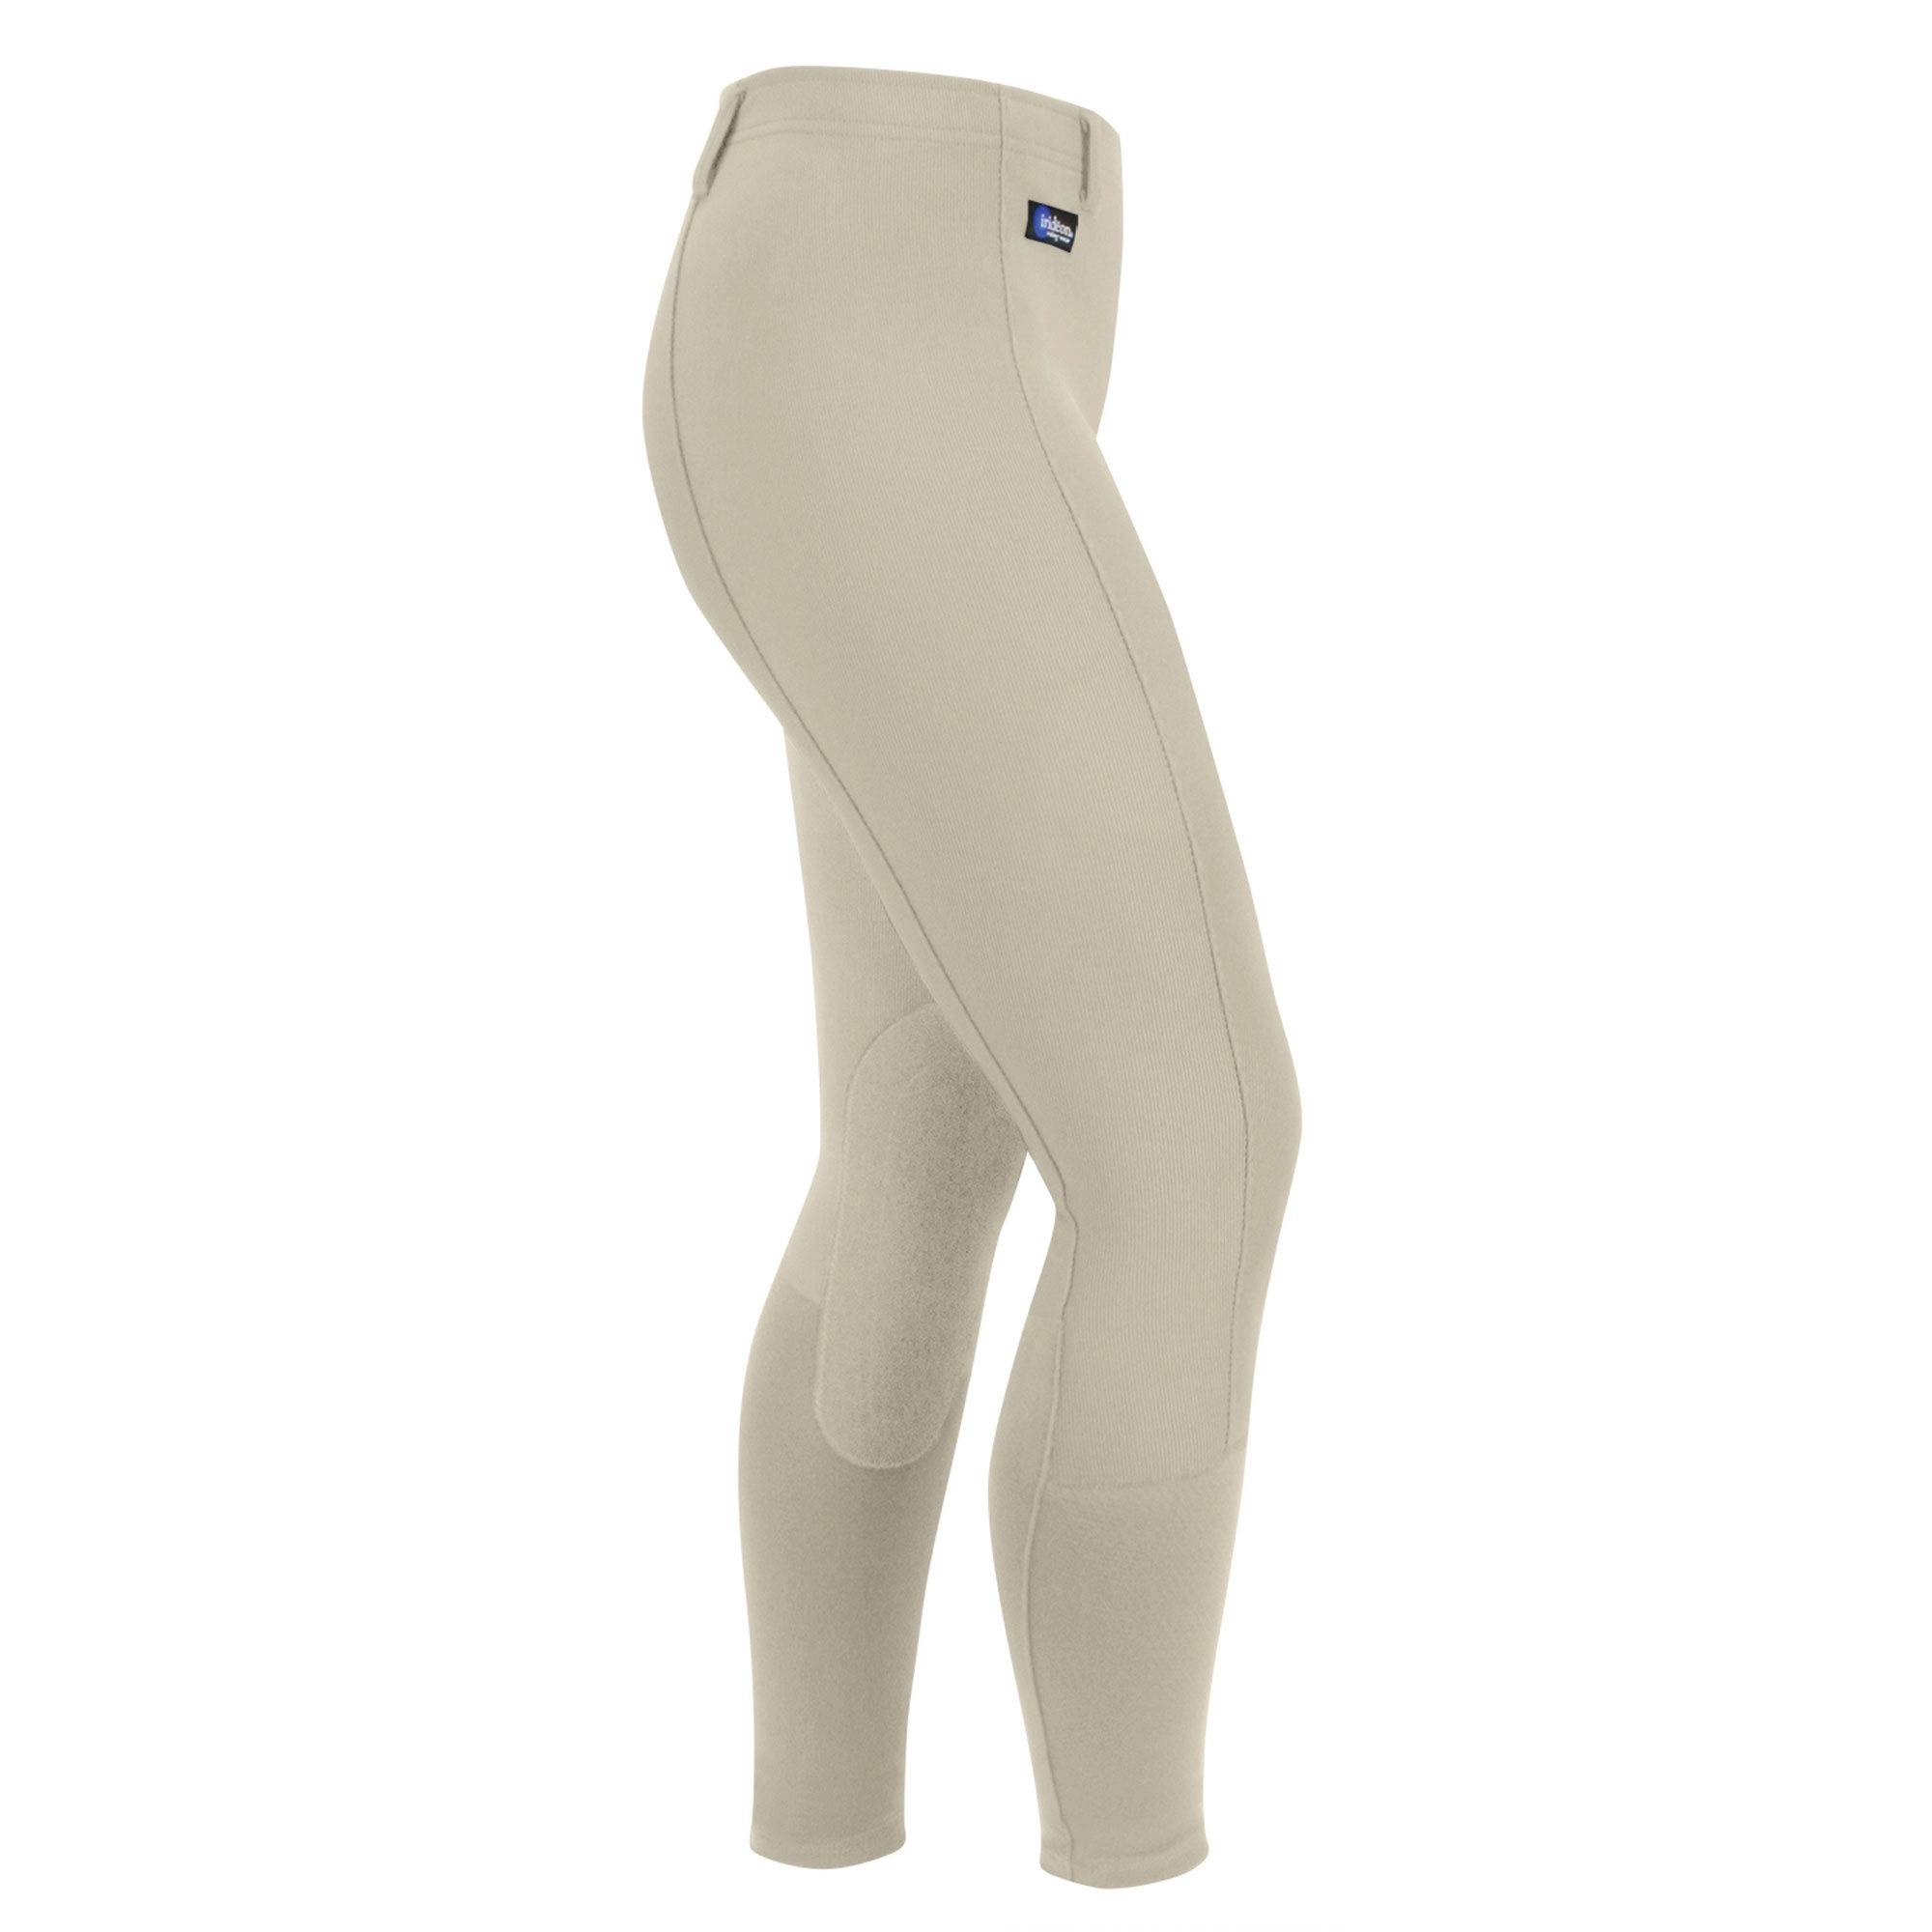 Irideon Cadence Chausette Breeches - Kids, Knee Patch